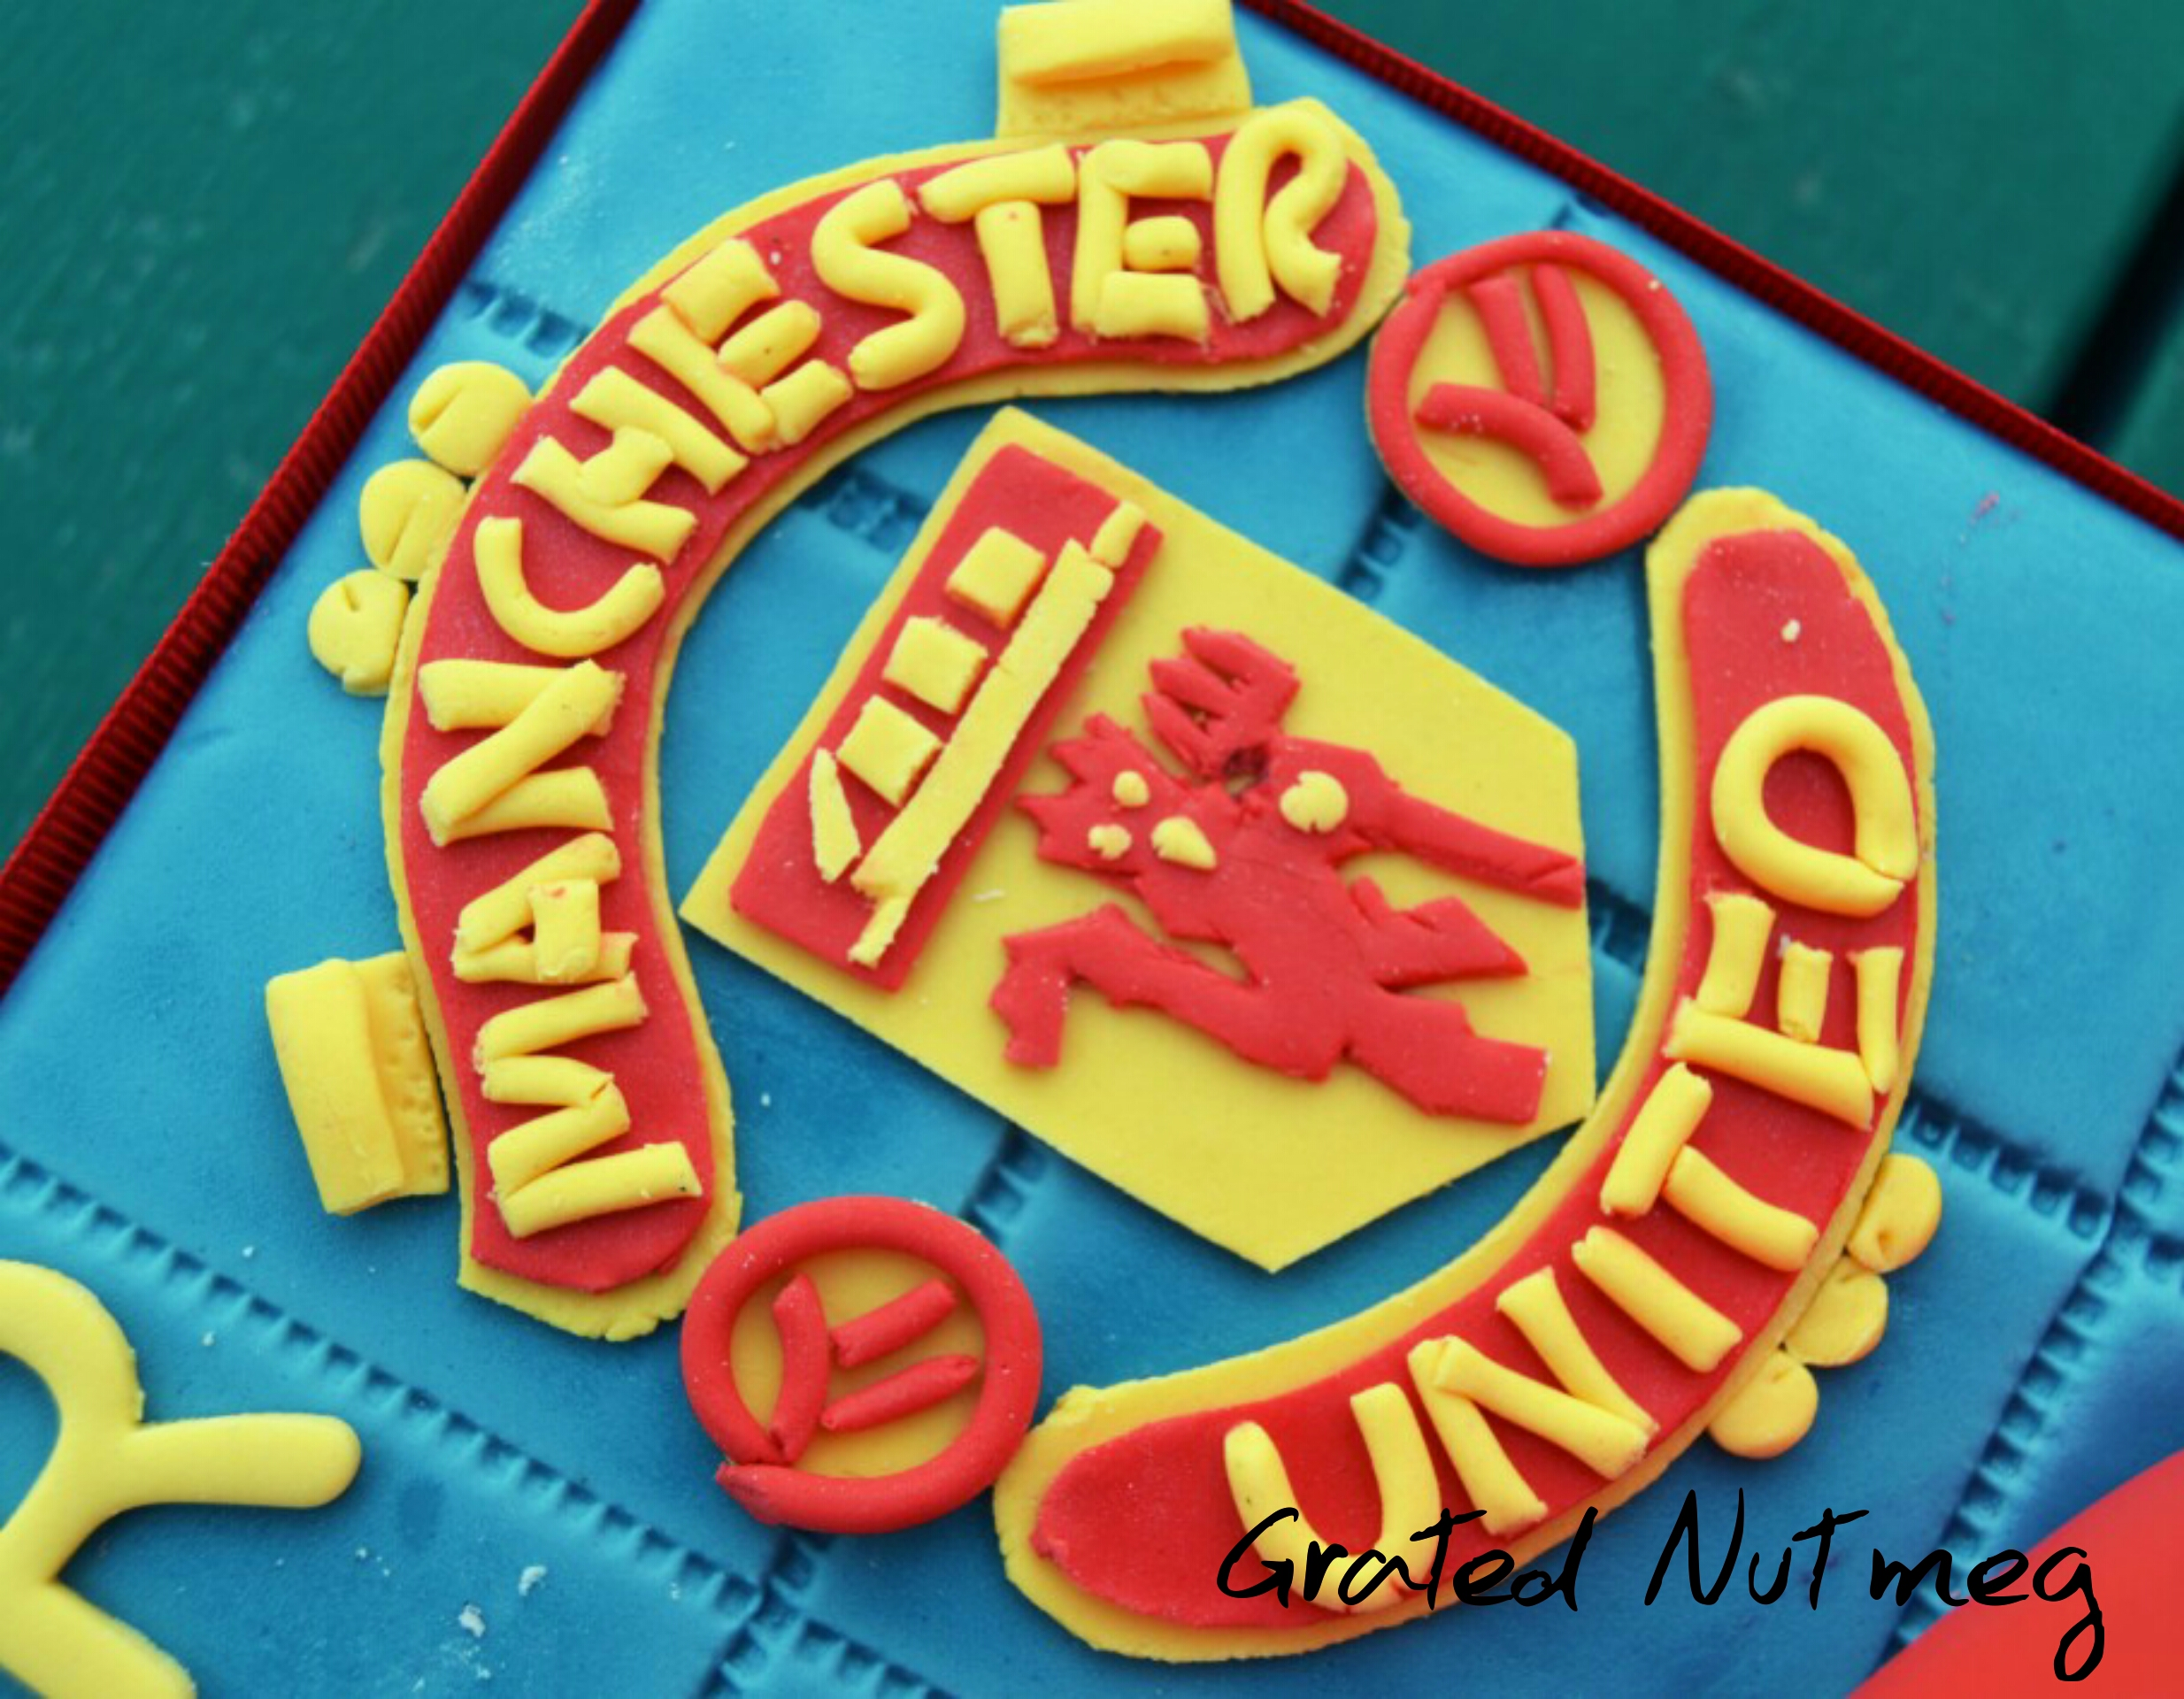 Fondant Manchester United Football Club Badge Pictorial Grated Nutmeg